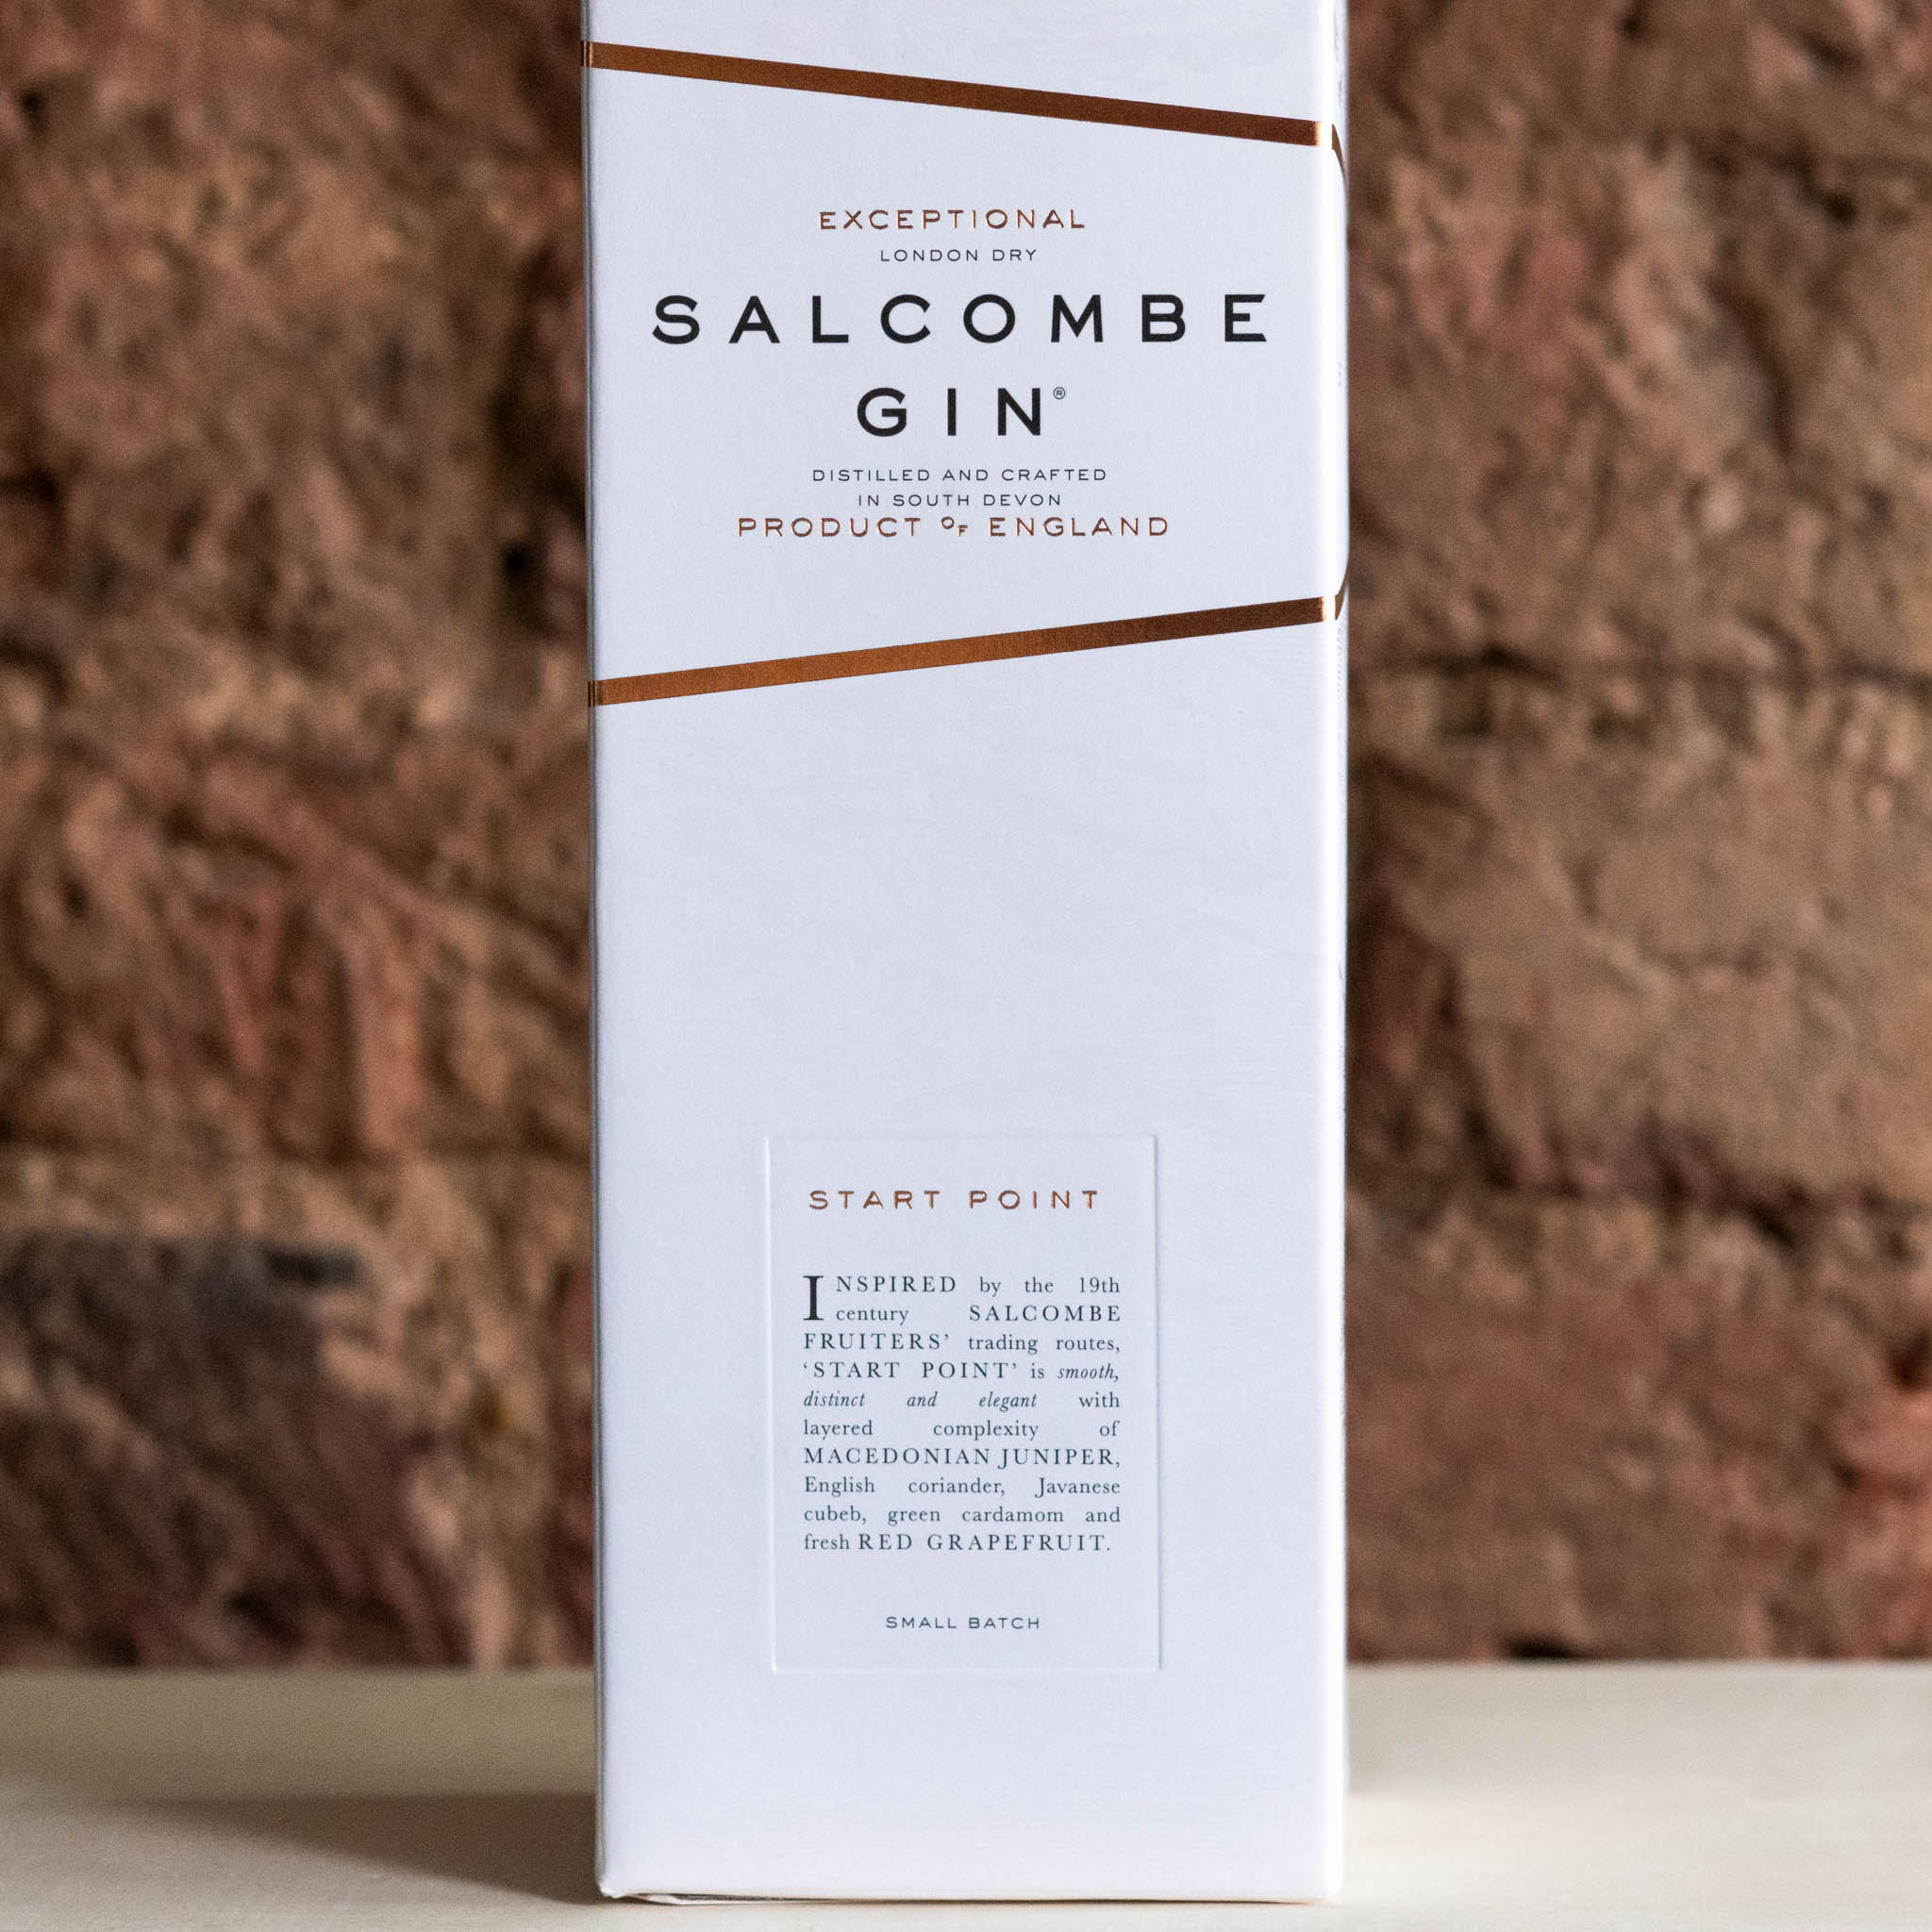 Salcombe Gin, UK - Vindinista